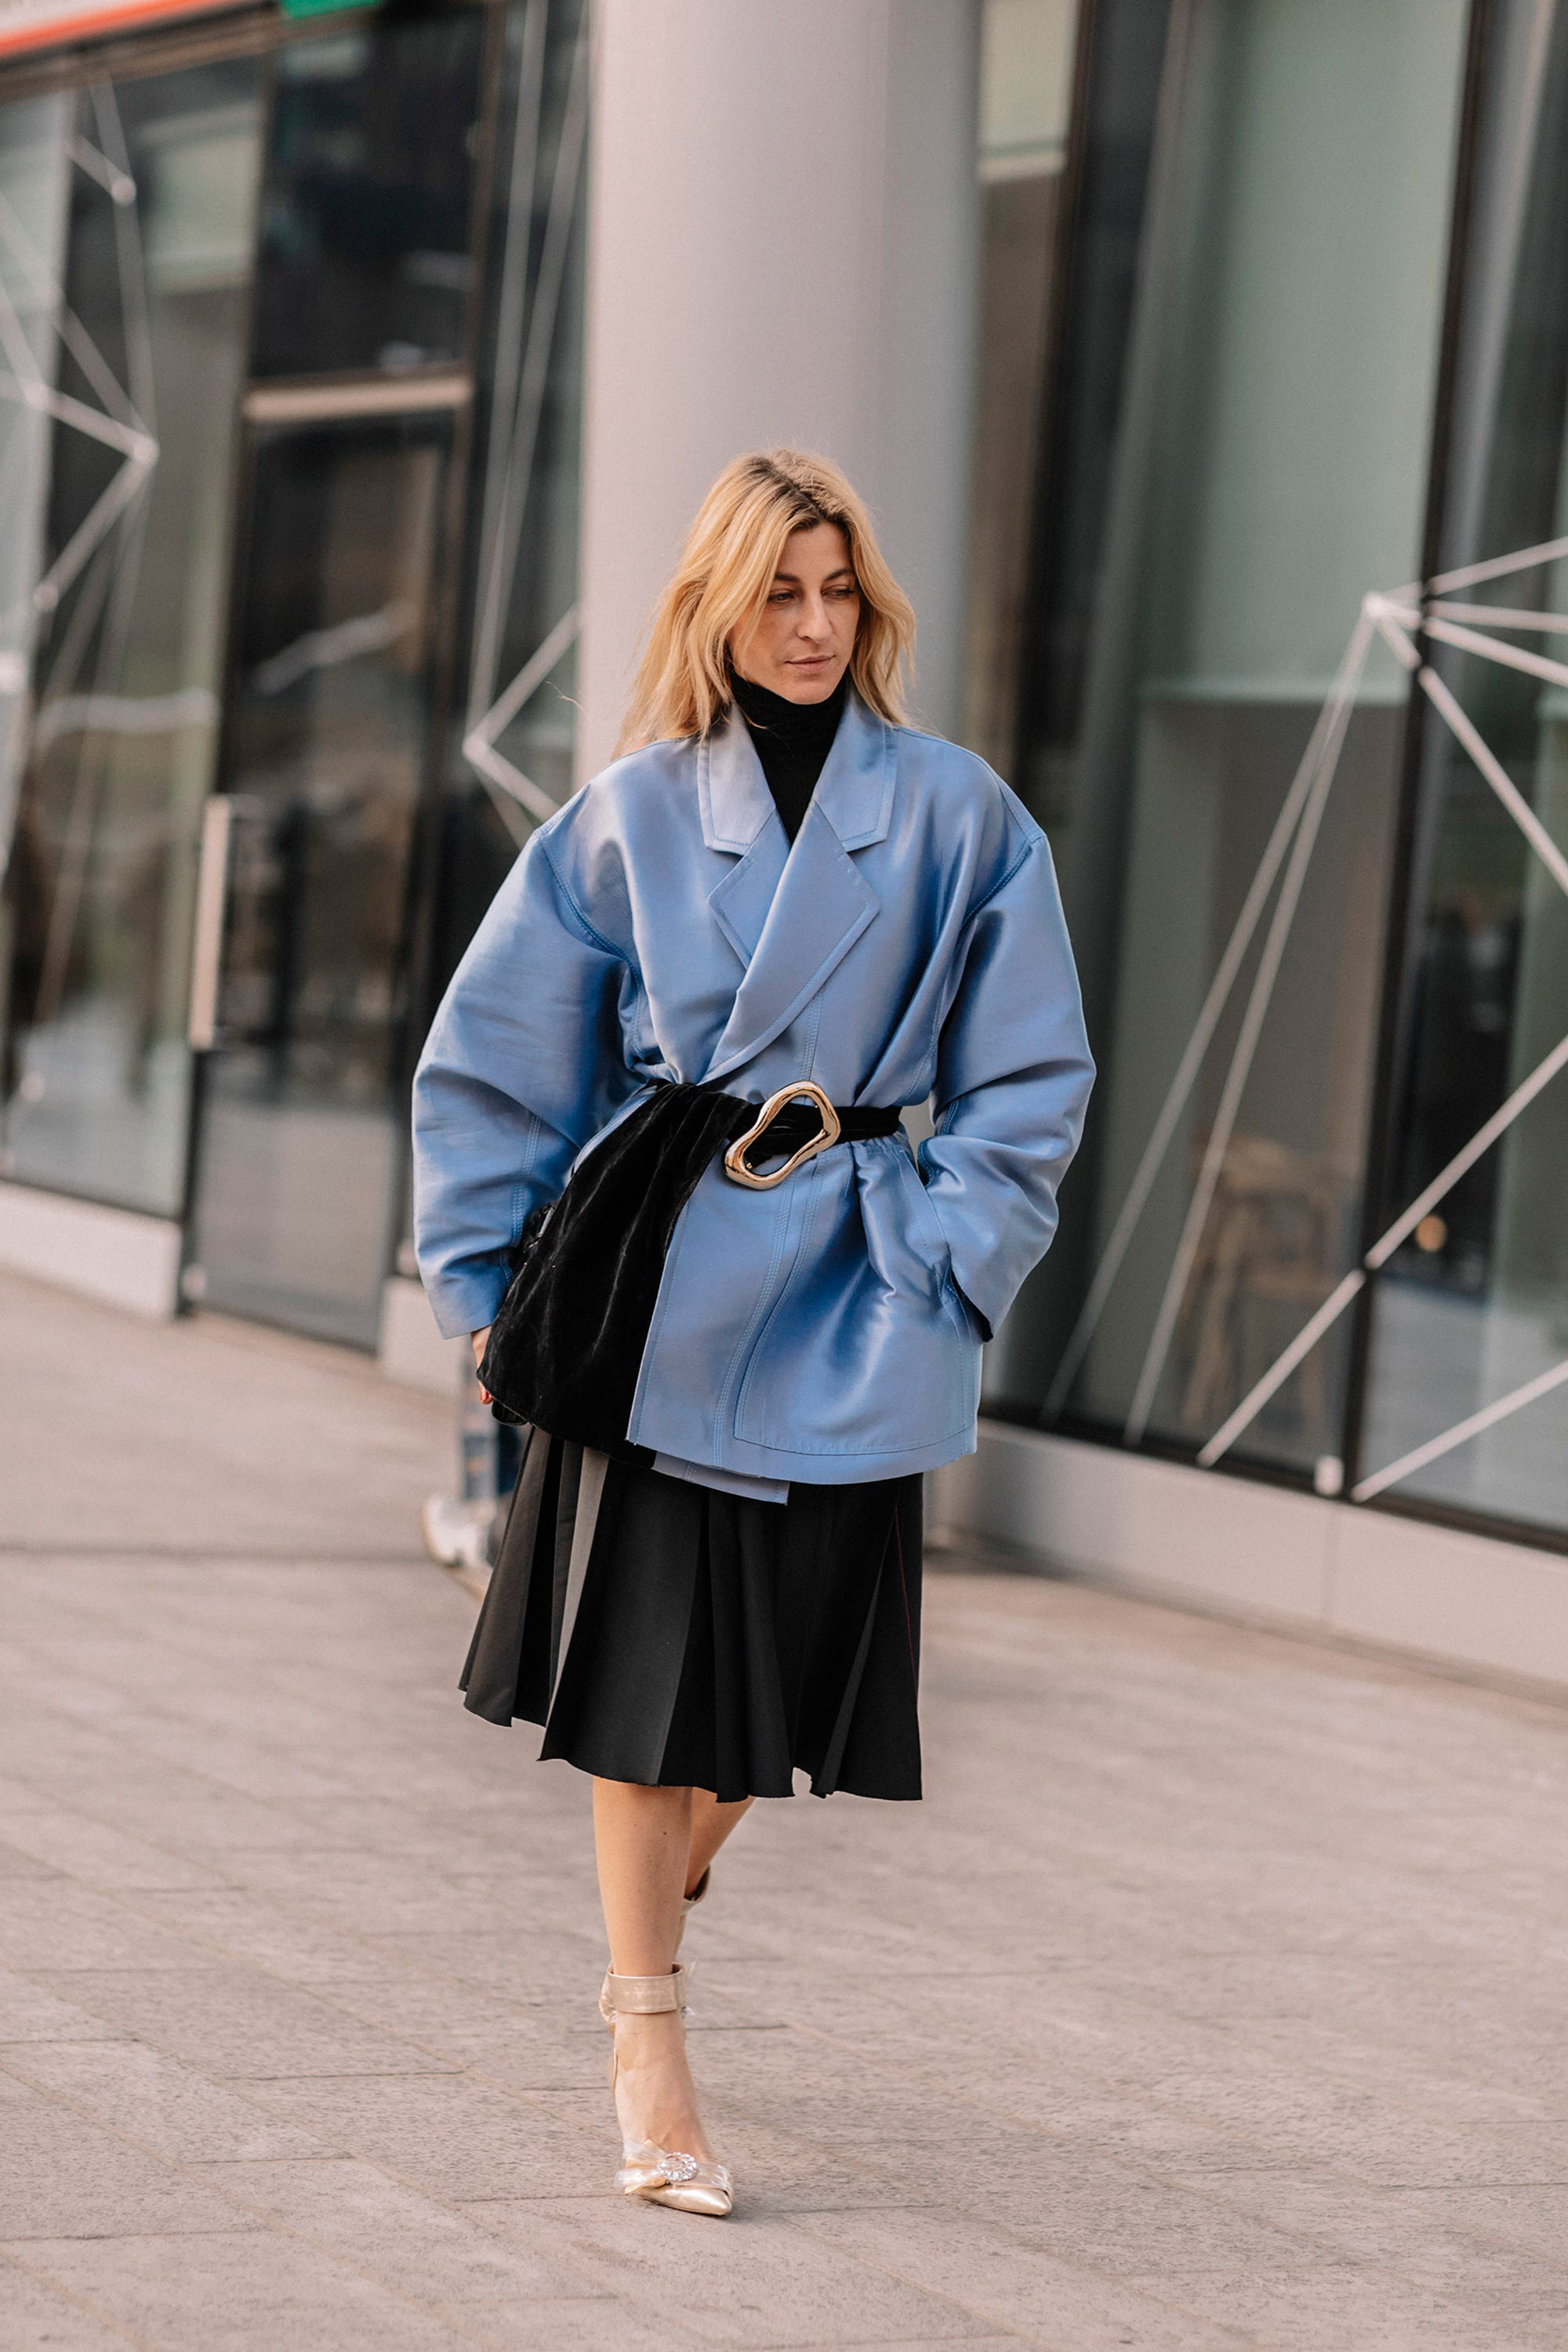 7c8d9bdd0a74 Milan Fashion Week Winter 2019 Best Street Style